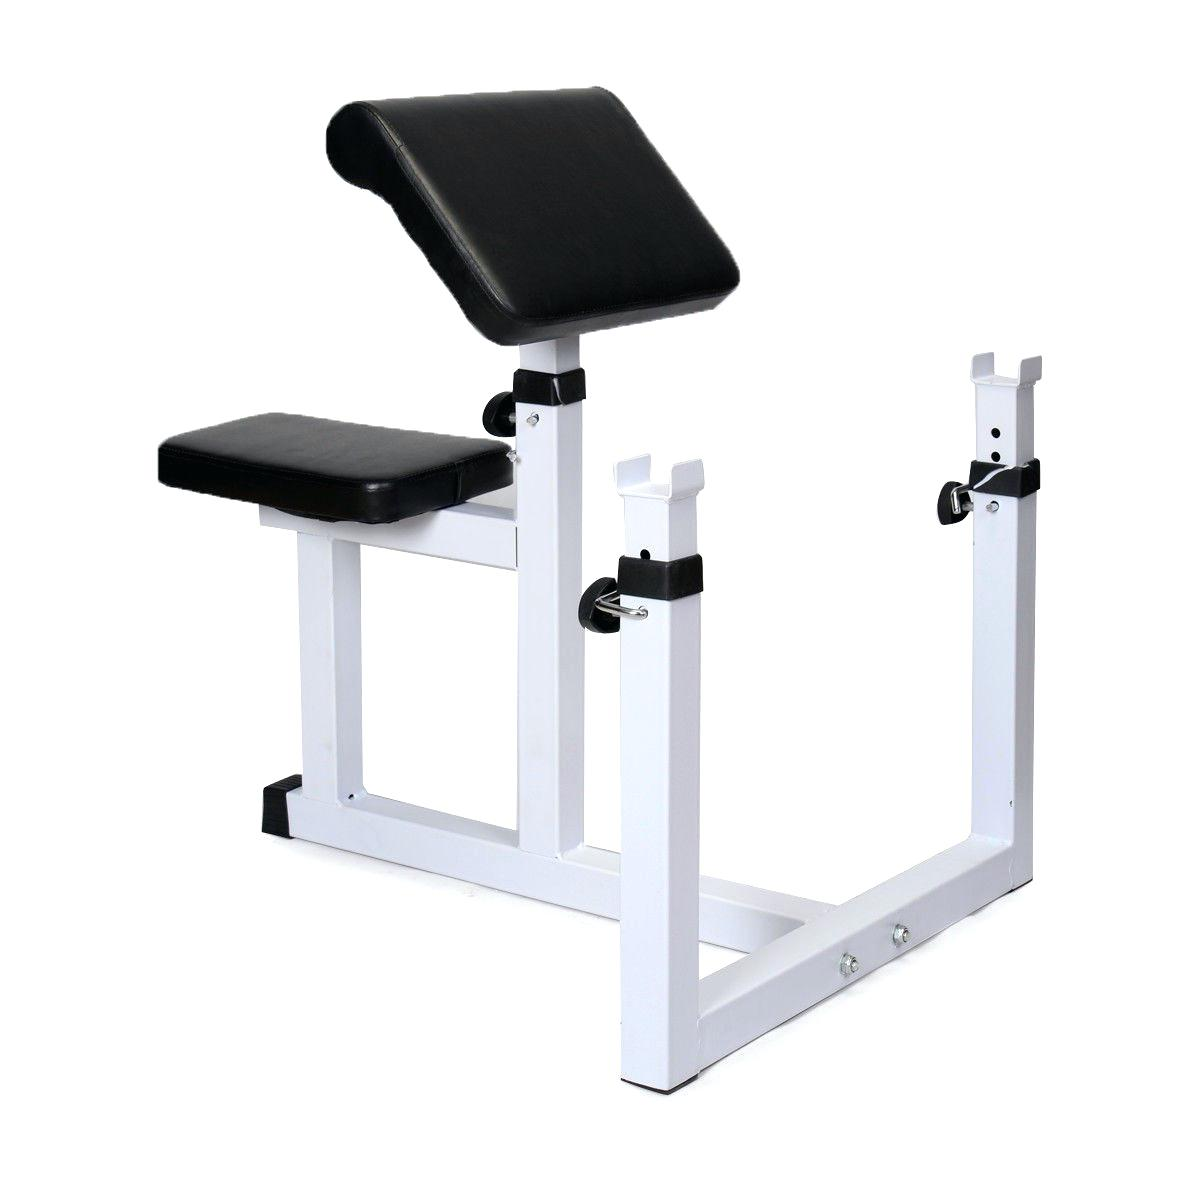 Free Weights and Bench for Sale | Craigslist Weight Bench | Used Weight Benches Cheap